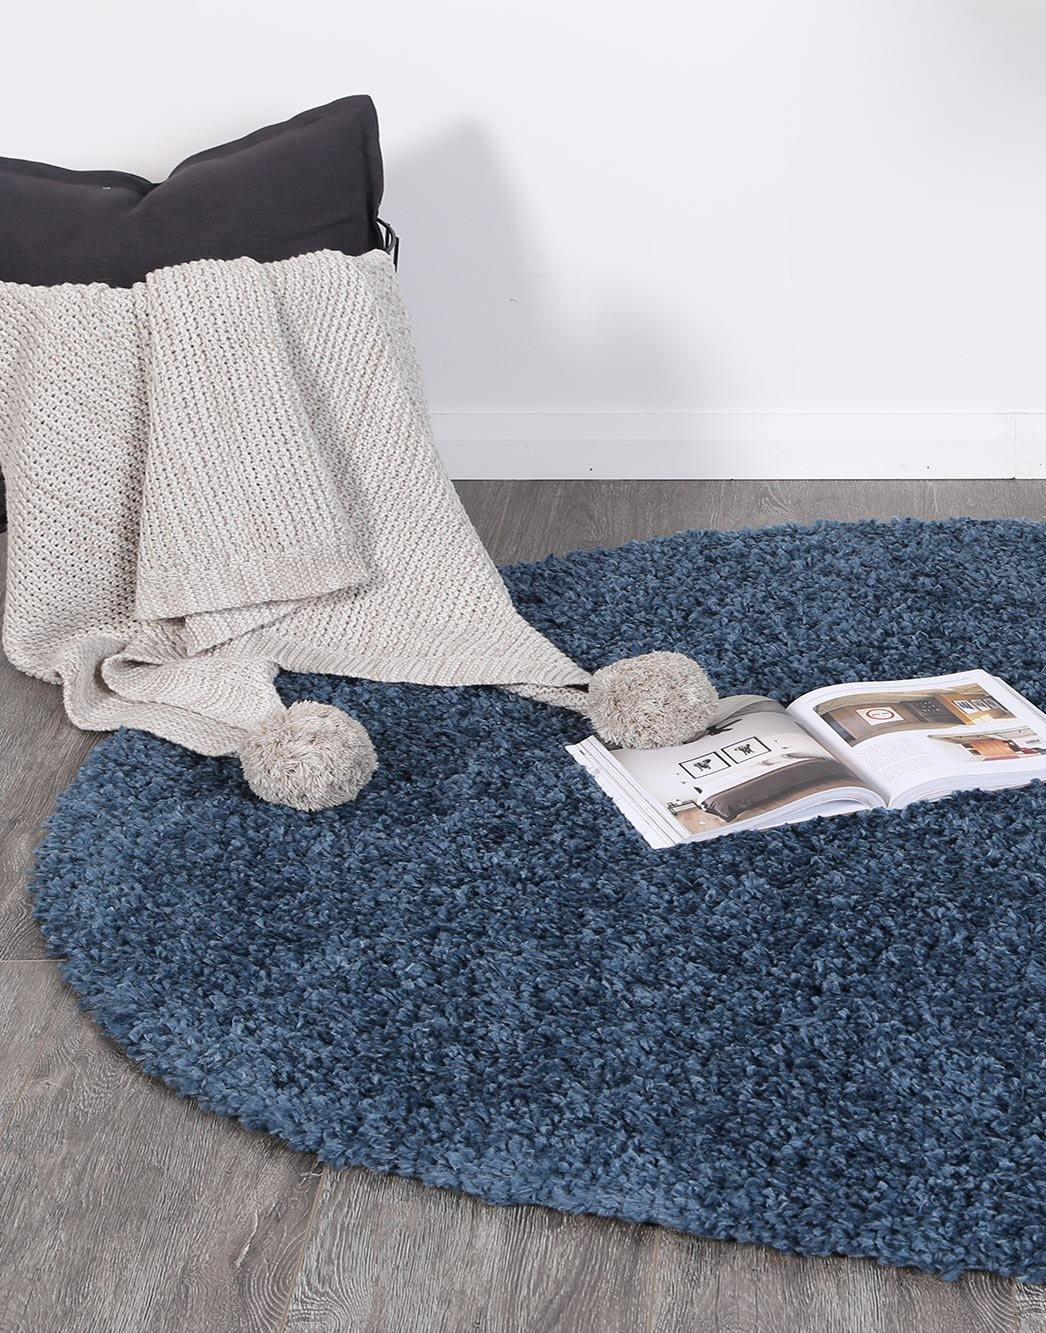 Danso Shaggy Navy Blue Round Rug - The Rugs